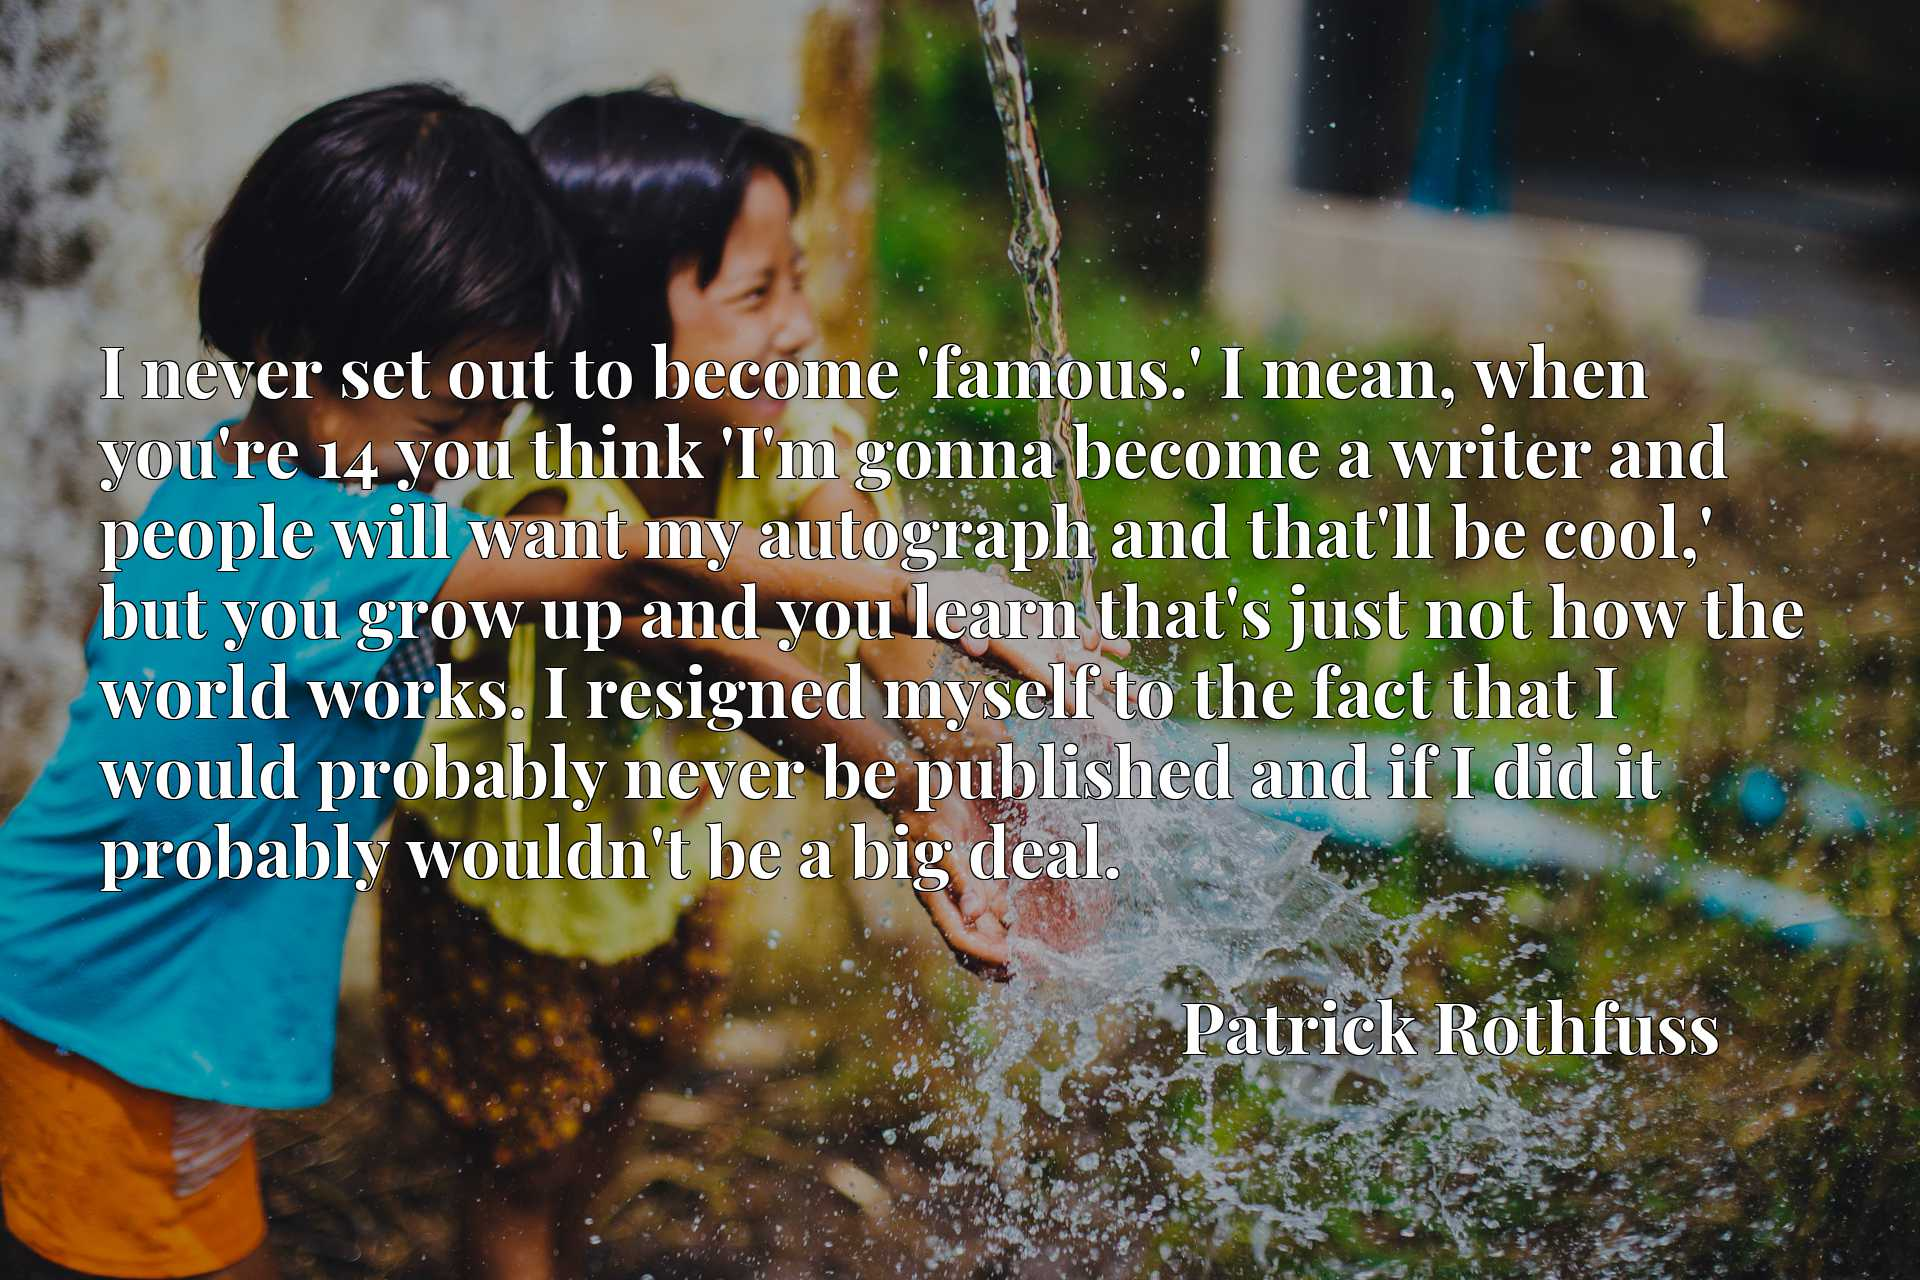 I never set out to become 'famous.' I mean, when you're 14 you think 'I'm gonna become a writer and people will want my autograph and that'll be cool,' but you grow up and you learn that's just not how the world works. I resigned myself to the fact that I would probably never be published and if I did it probably wouldn't be a big deal.